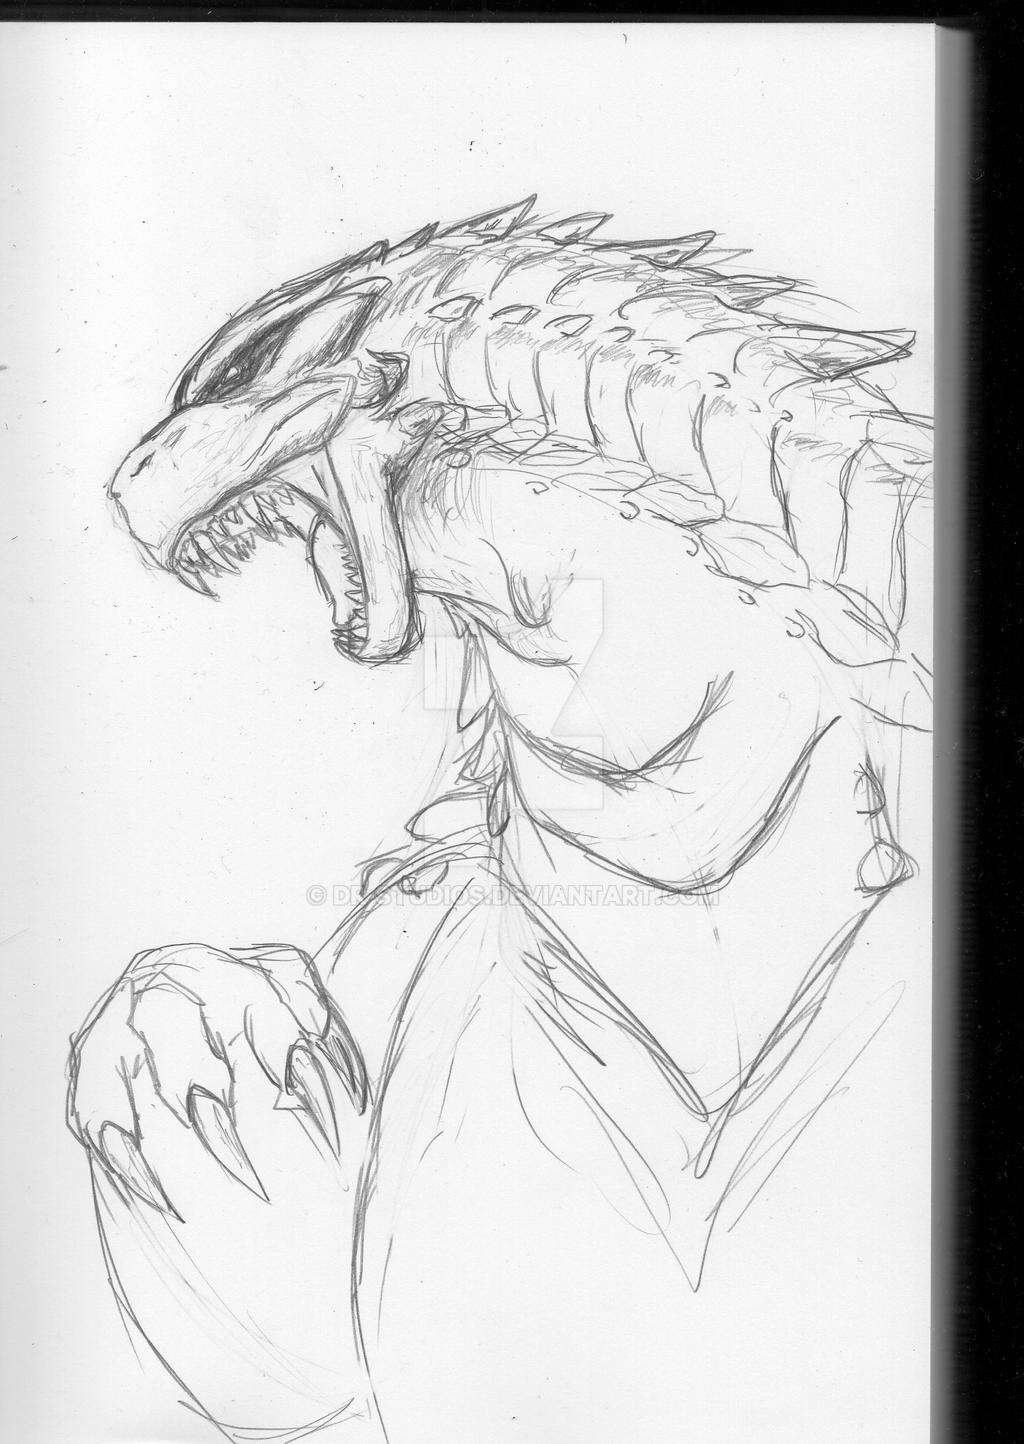 'BearGoji' sketch by DR-Studios